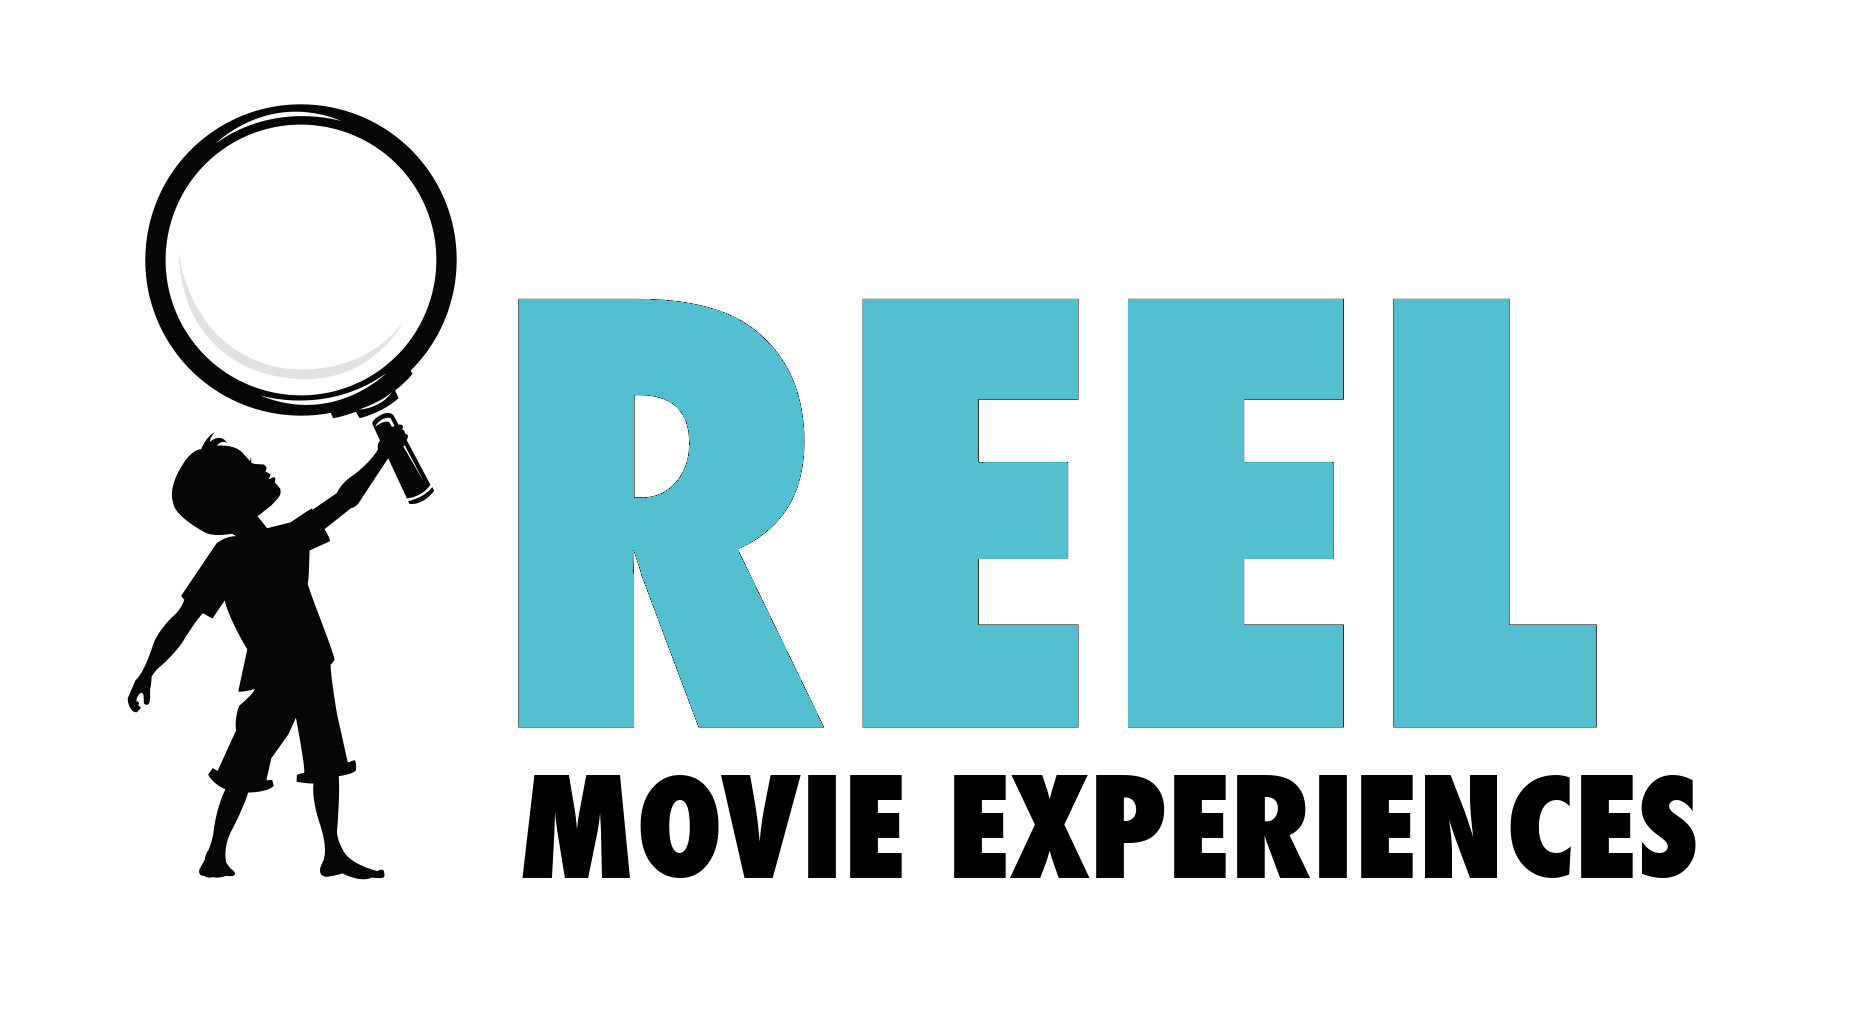 1850x1017 Images Of Movie Reel Logo Related